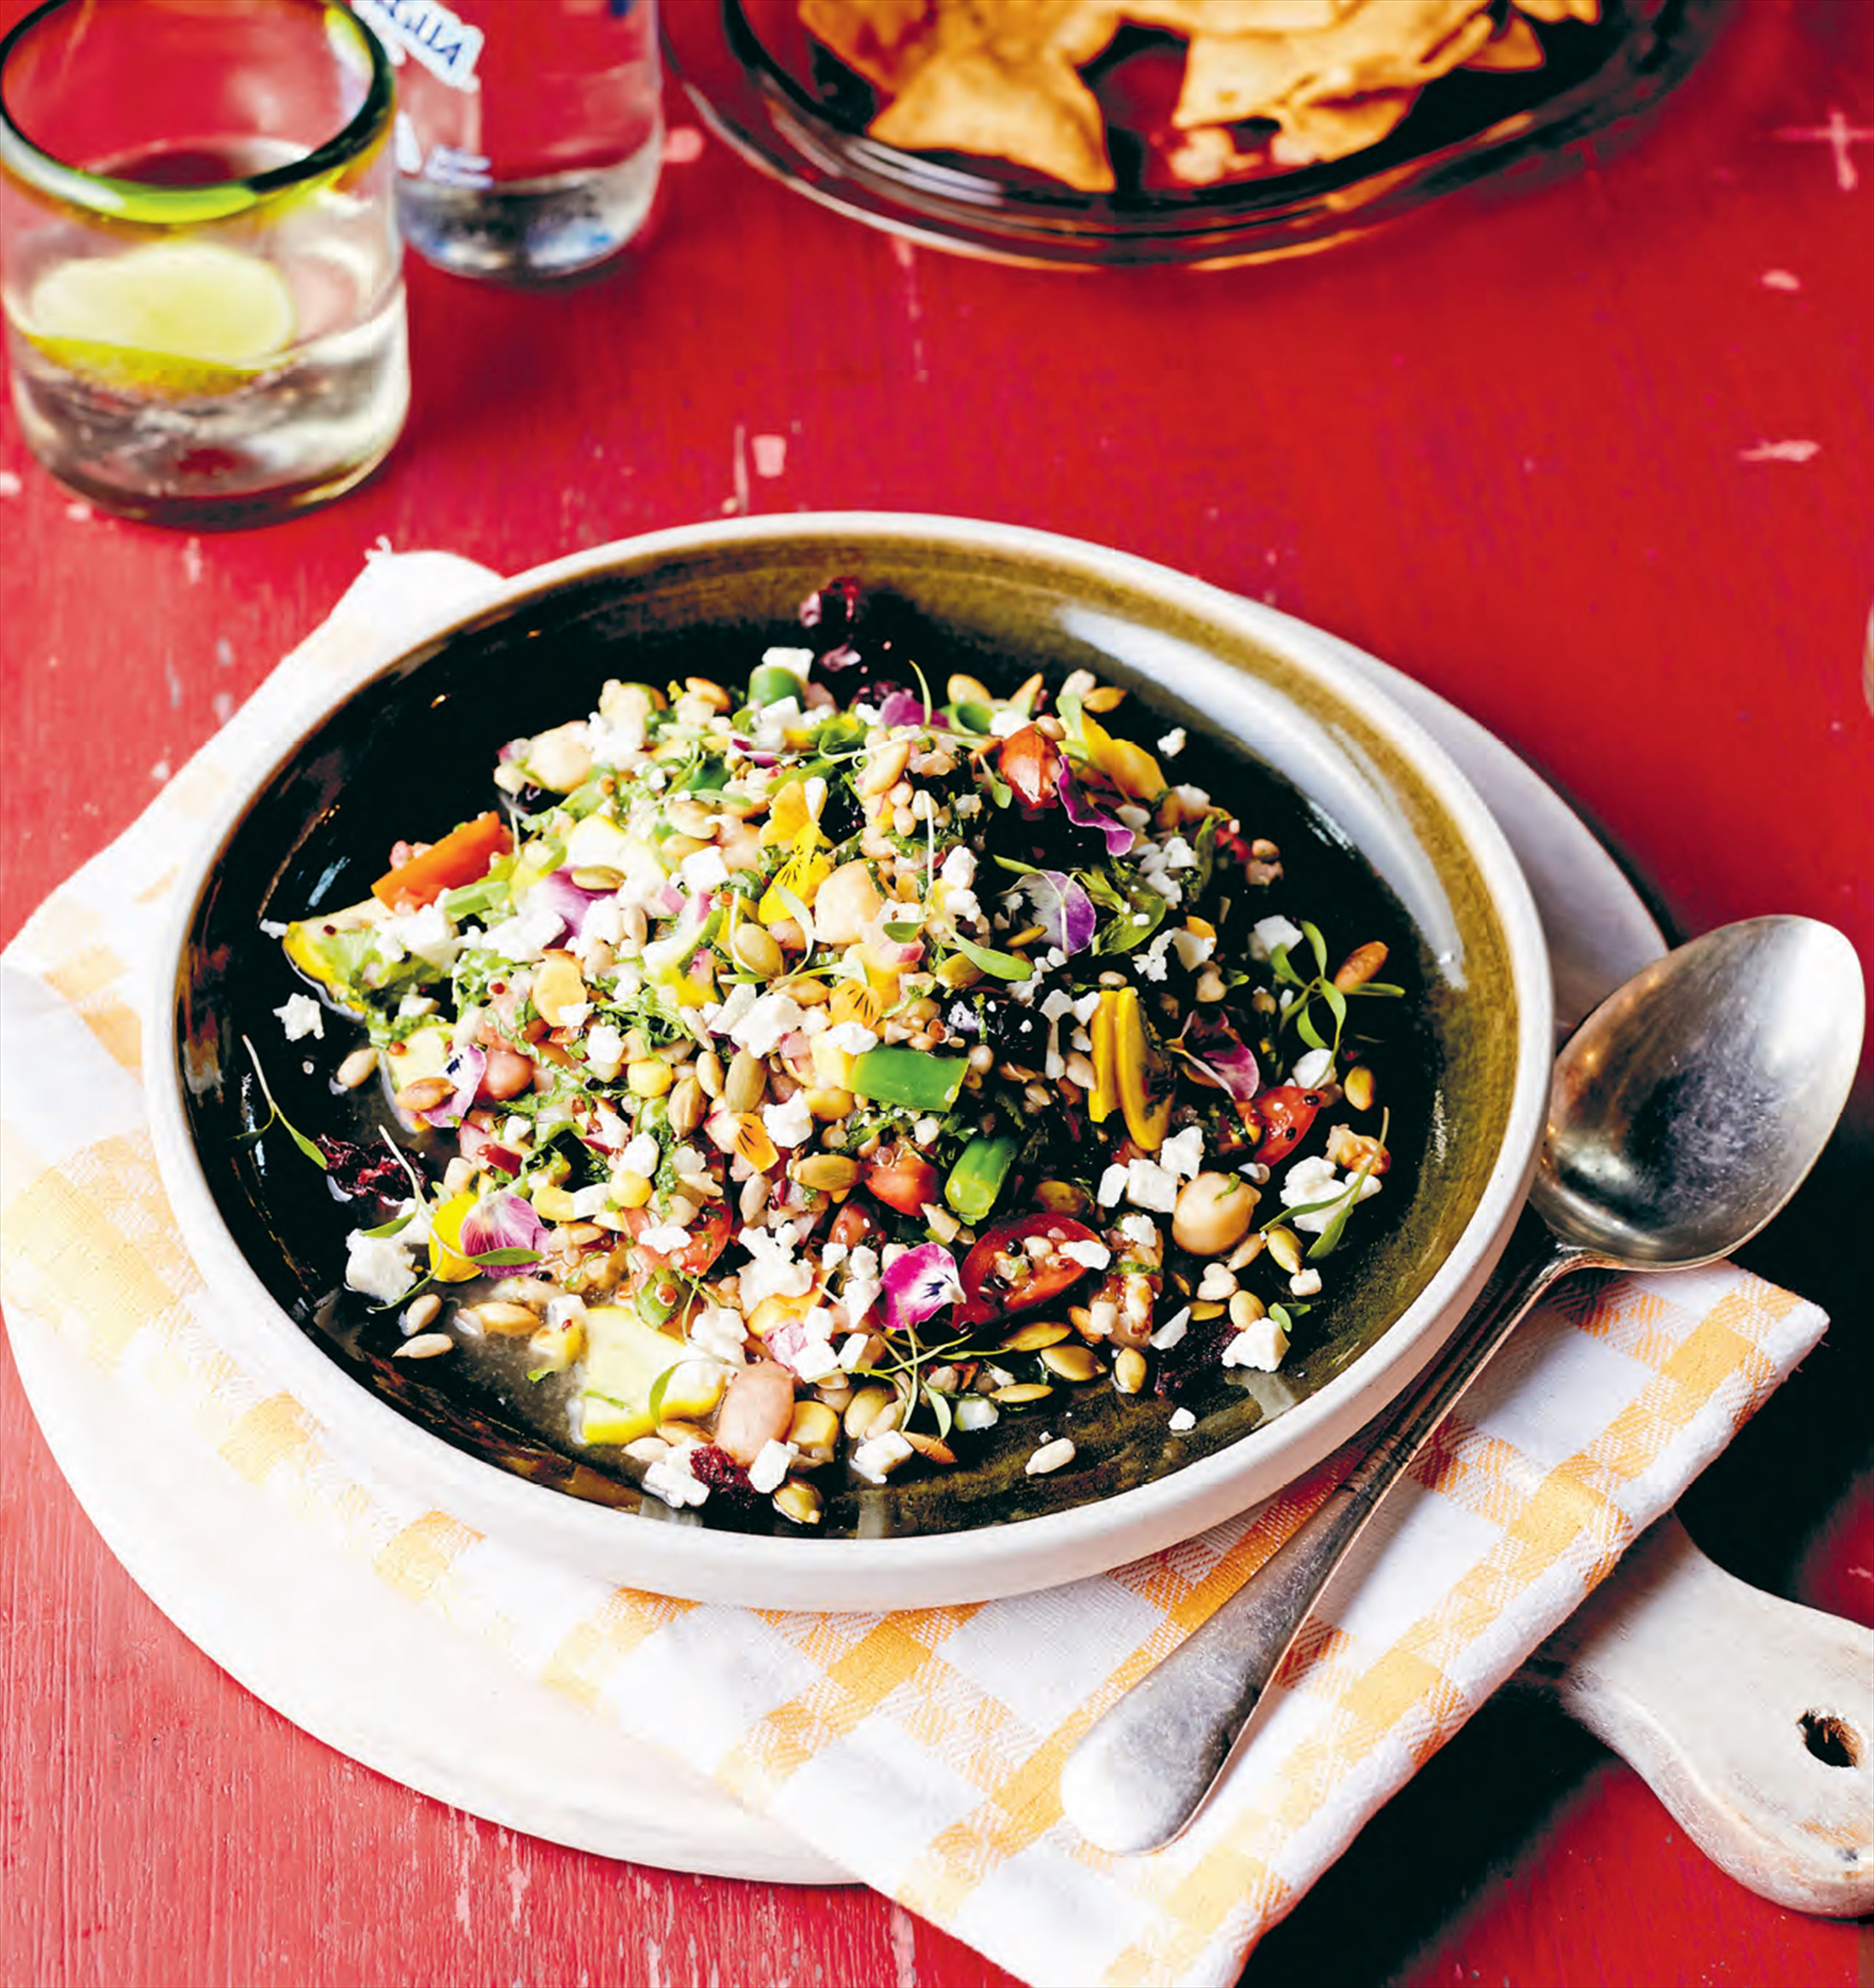 Super squash salad with grains, seeds & pulses